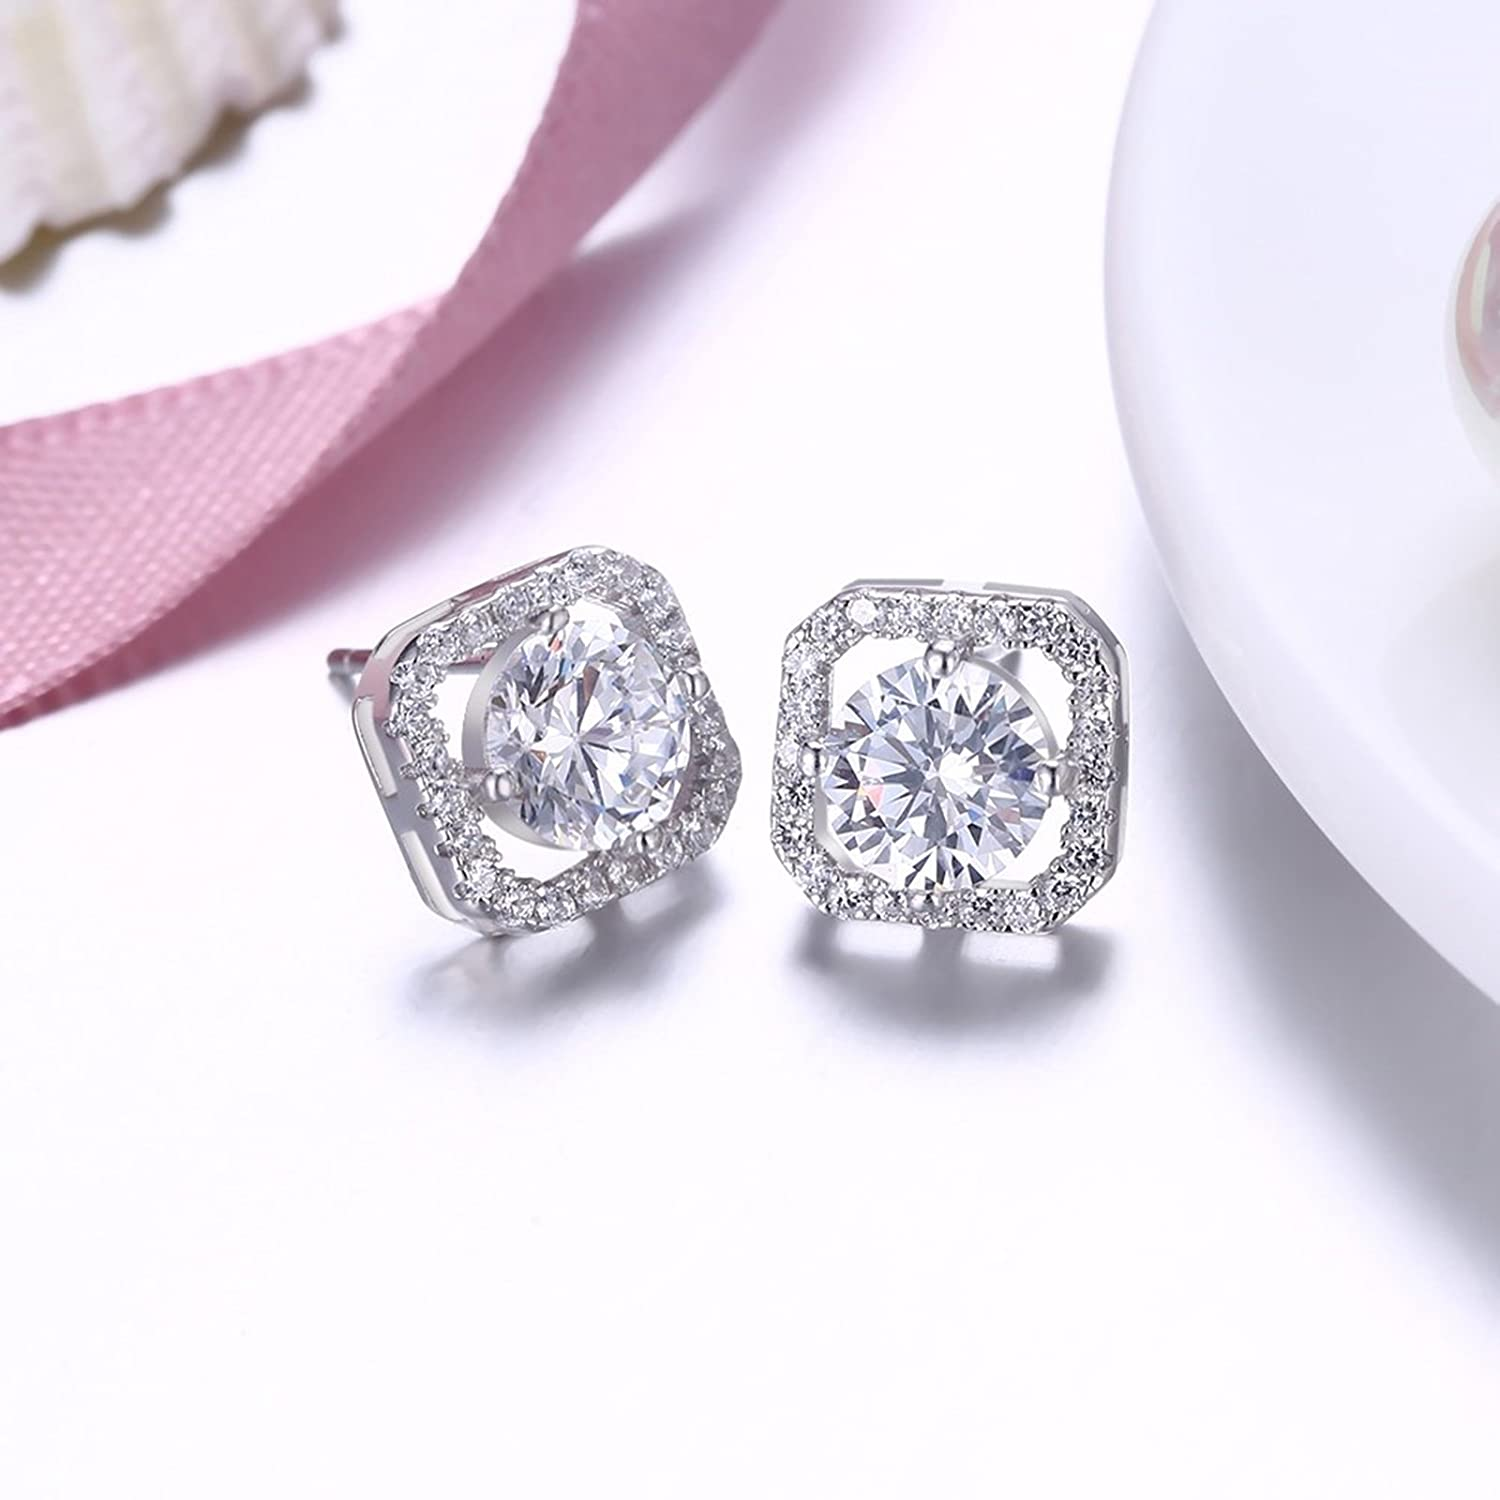 Beydodo 925 Earrings Studs for Women Hypoallergenic Earrings Stud Womens Zirconia Round Cubic Zirconia